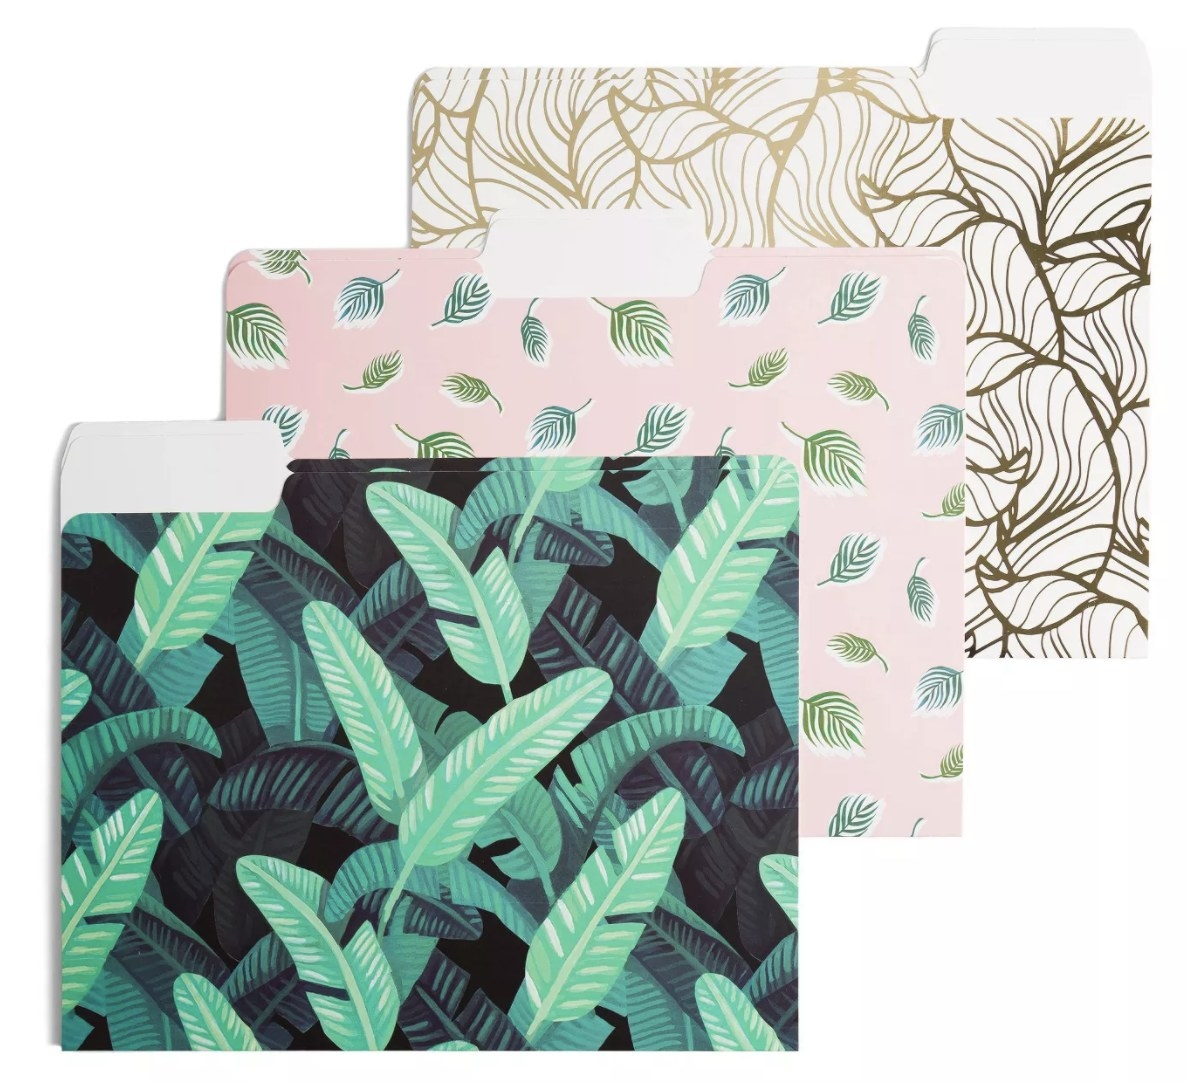 Set of botanical file folders in three different patterns